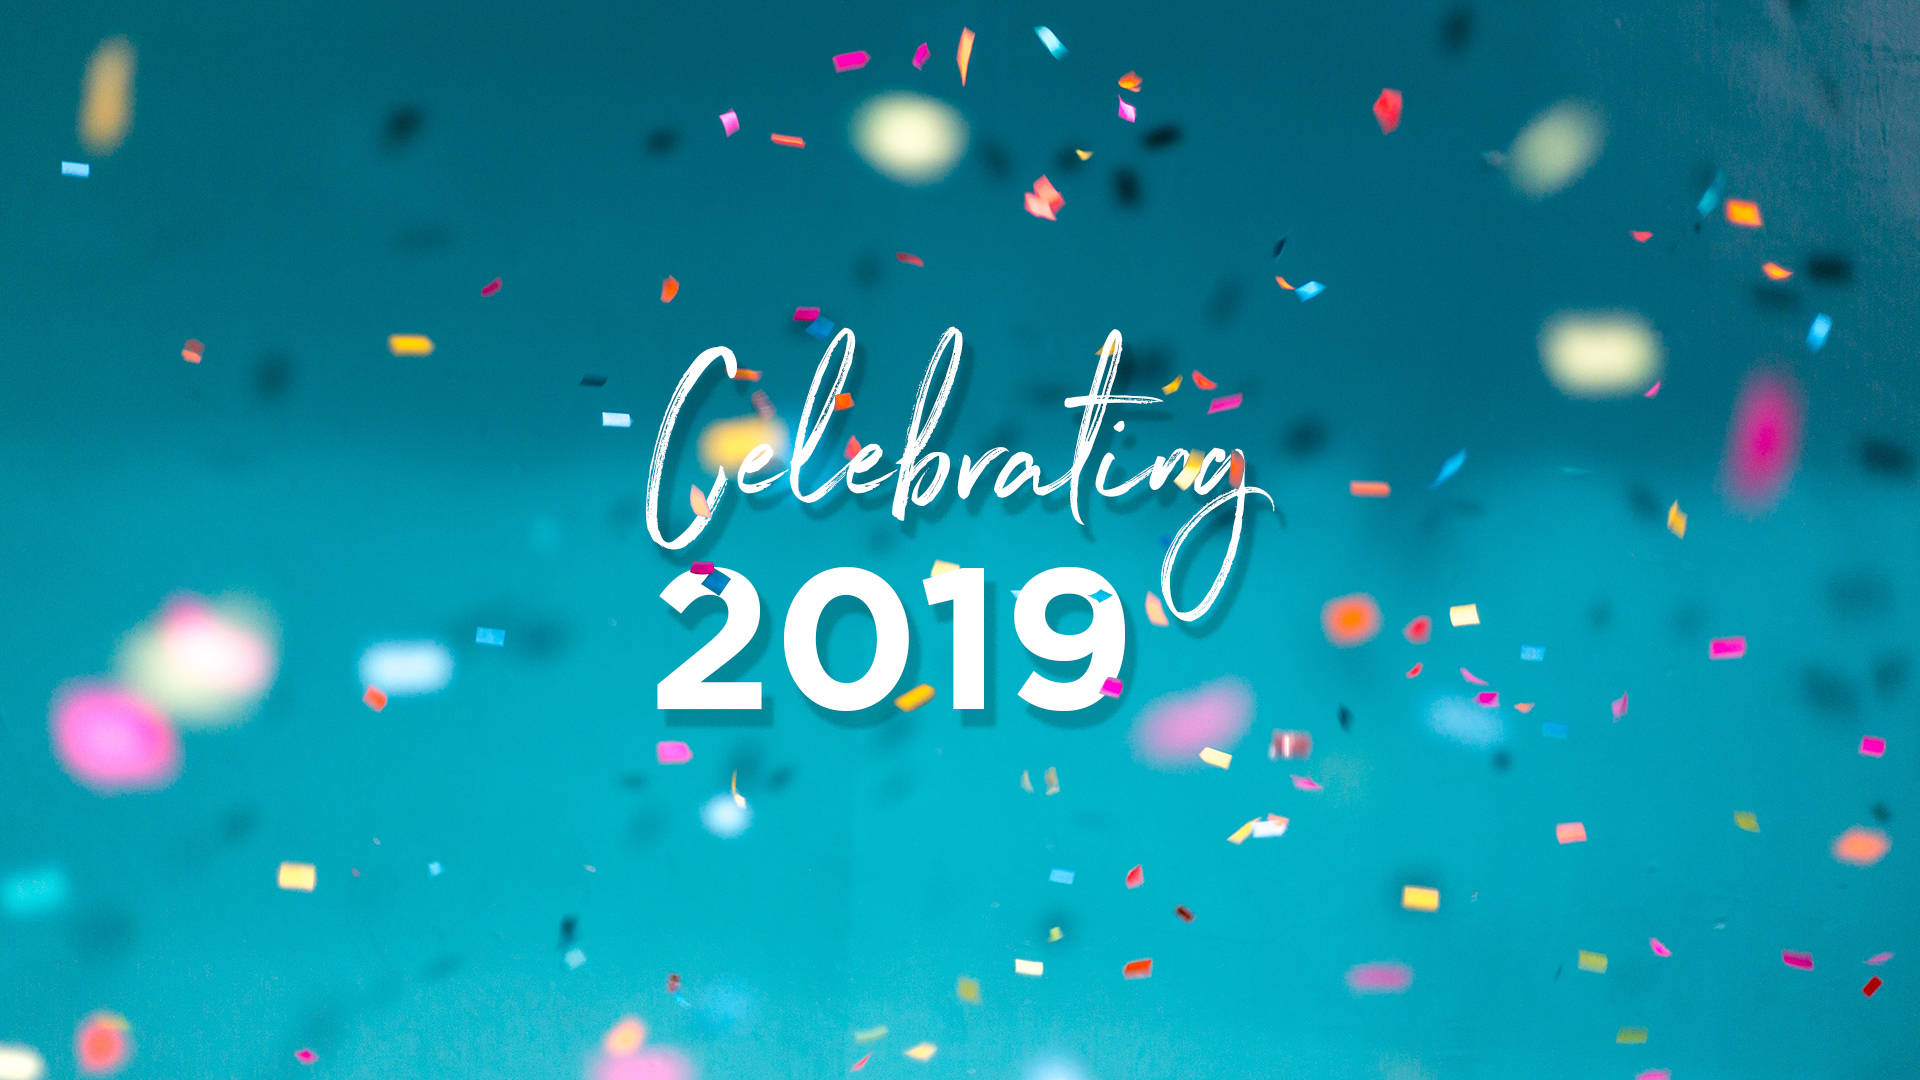 Celebrating 2019